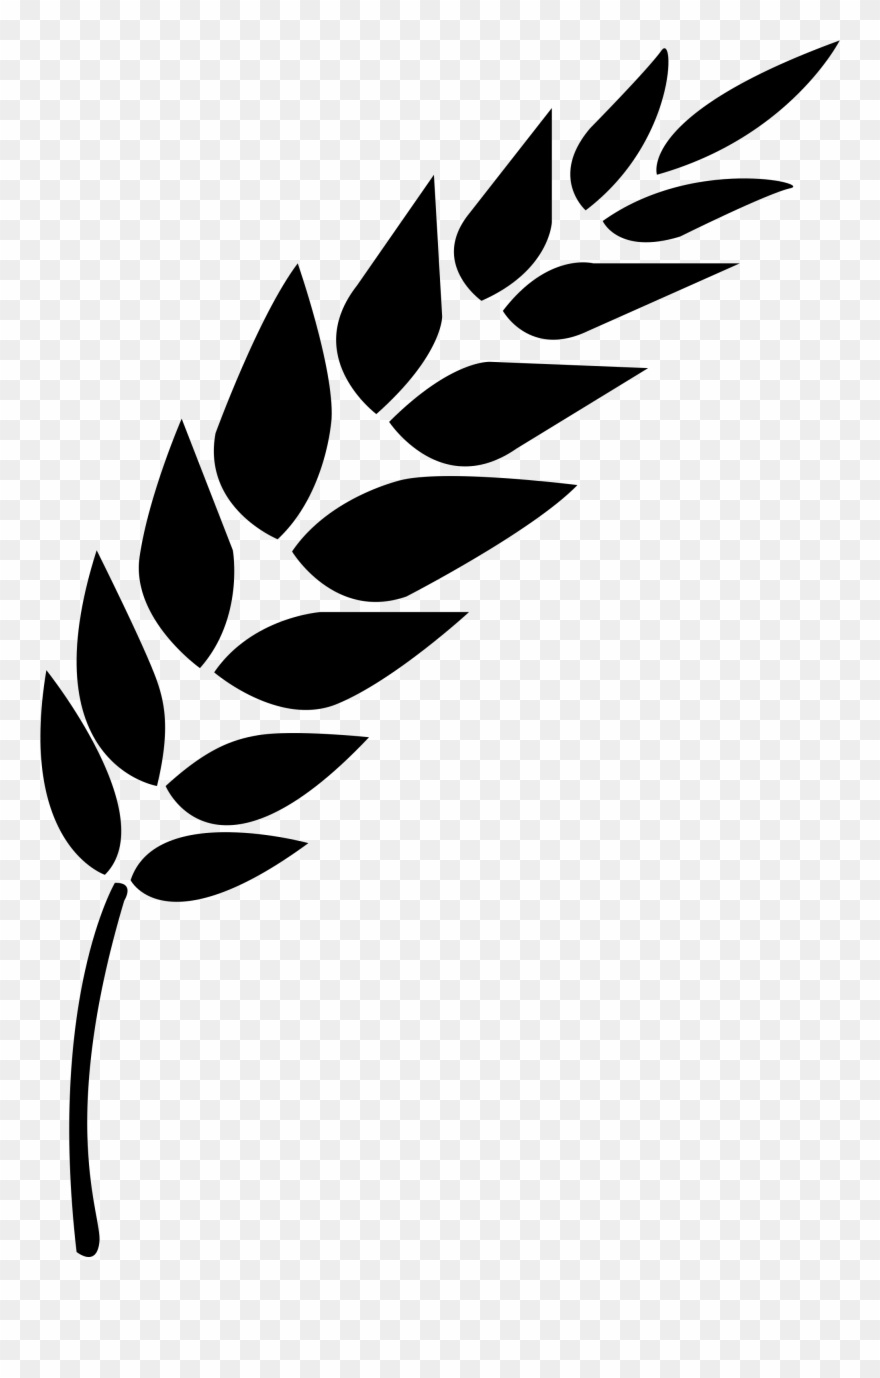 Wheat clipart vector banner freeuse download Wheat Vector - Black And White Wheat Stalk Clipart (#847632 ... banner freeuse download